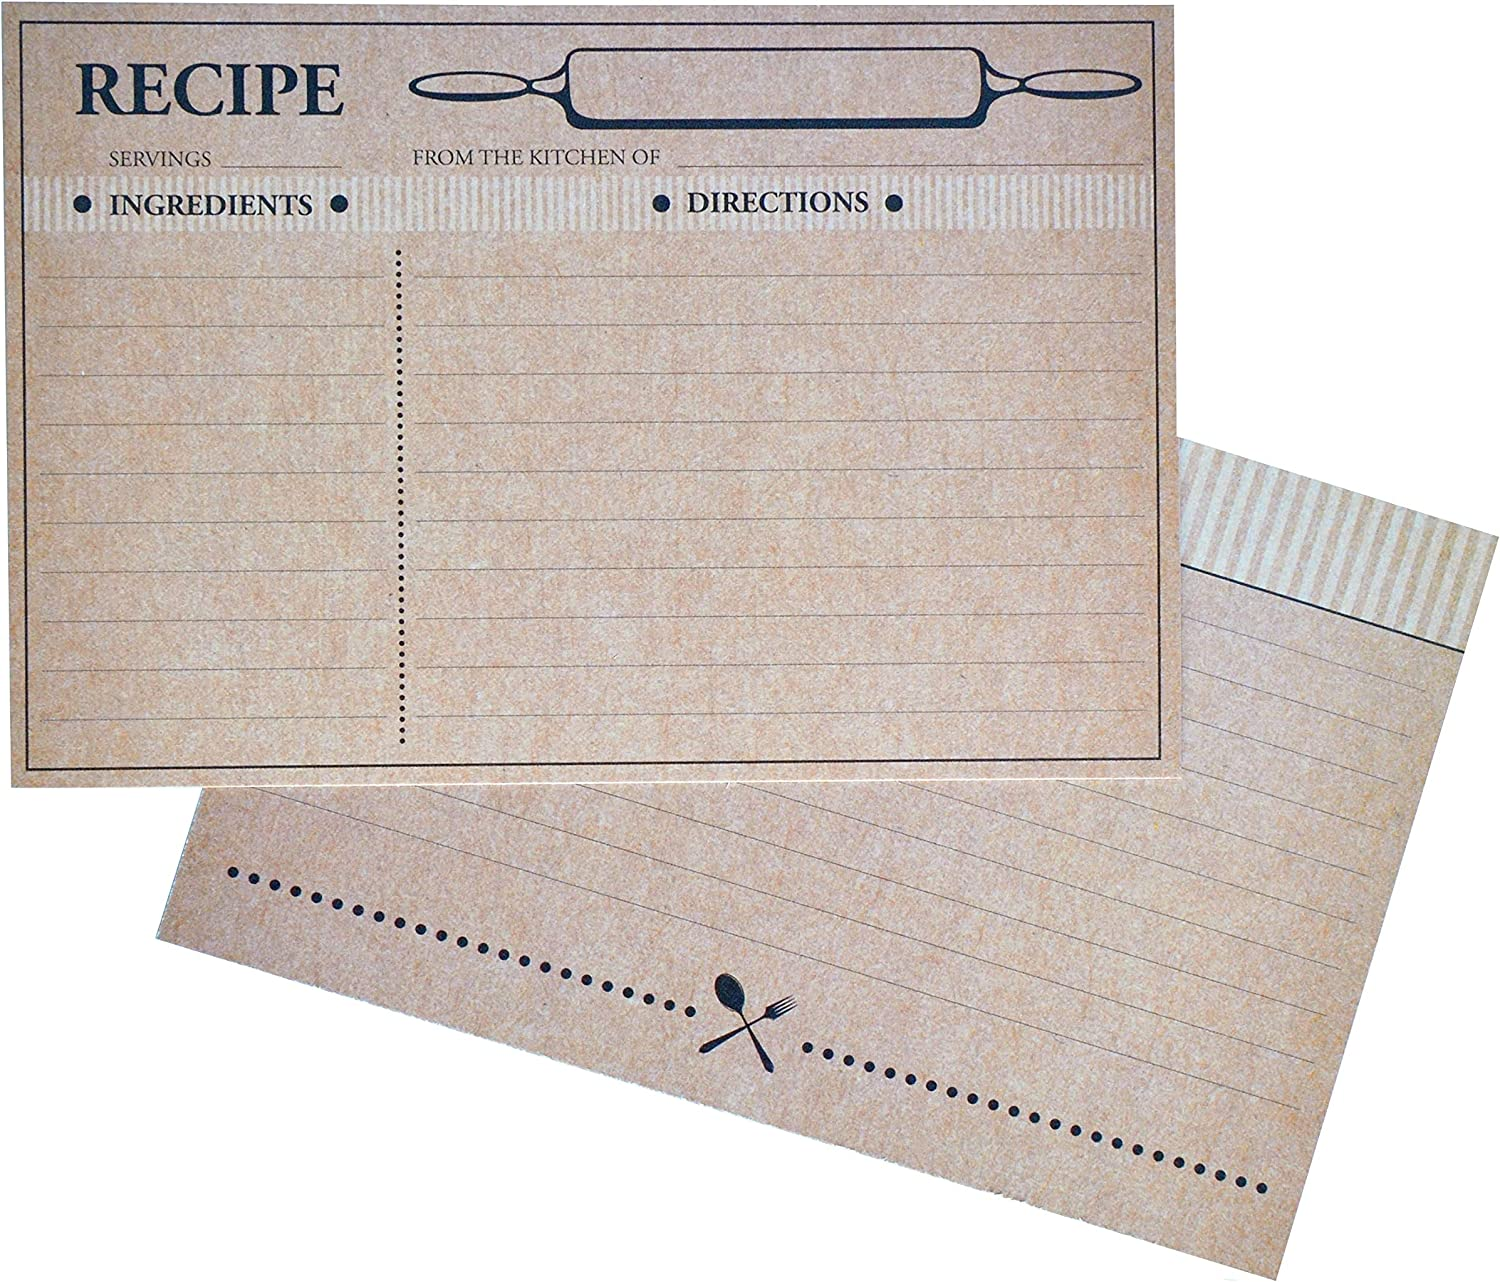 Home Advantage 50 Farmhouse Rustic Recipe Cards 4x6, Double Sided Kraft Design Cards